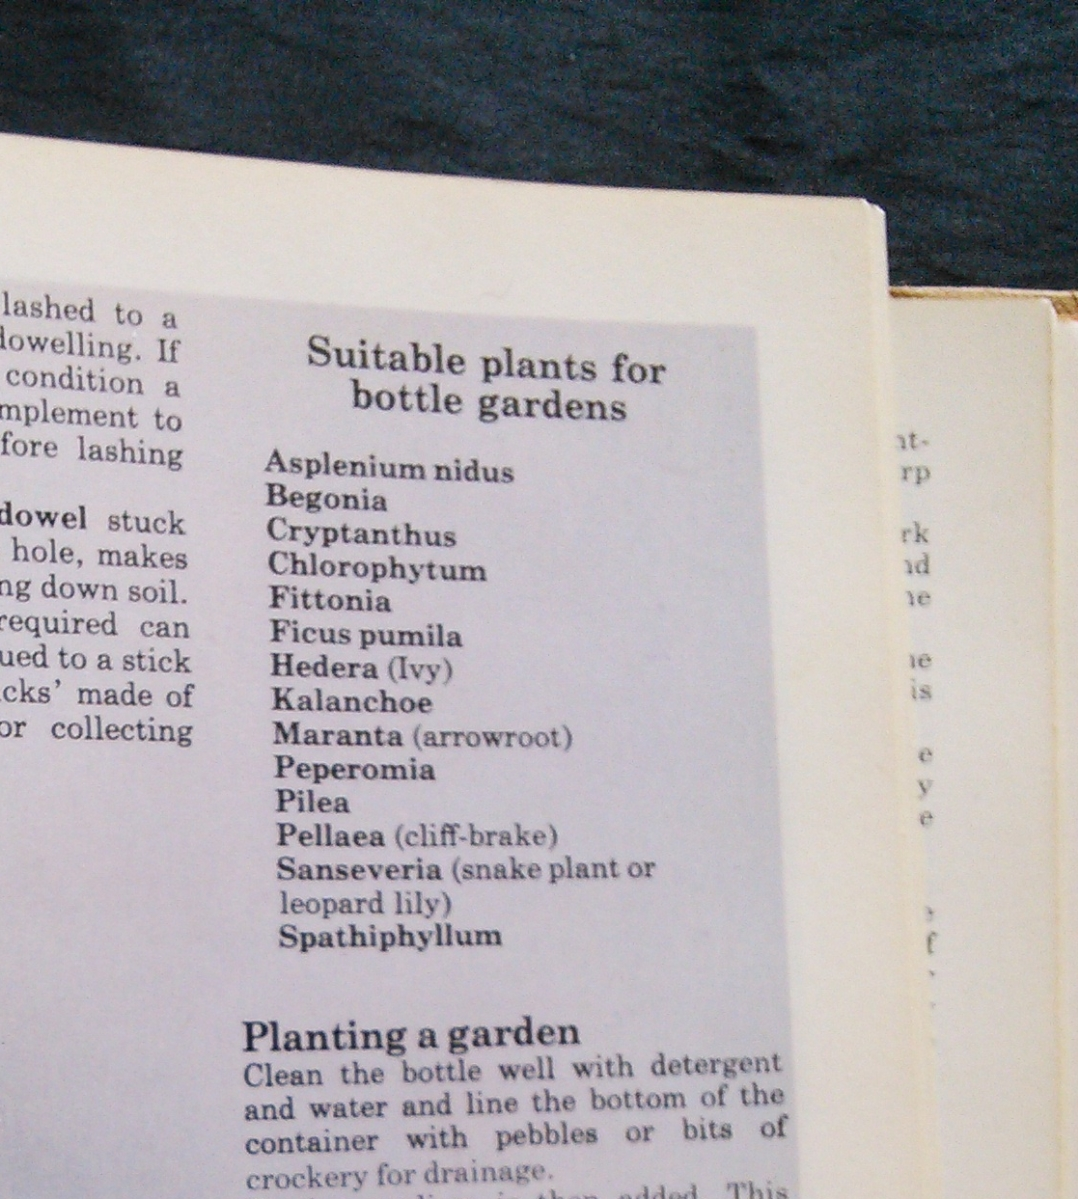 Though my 'Complete Crafts' book published in 1977 does offer this advice